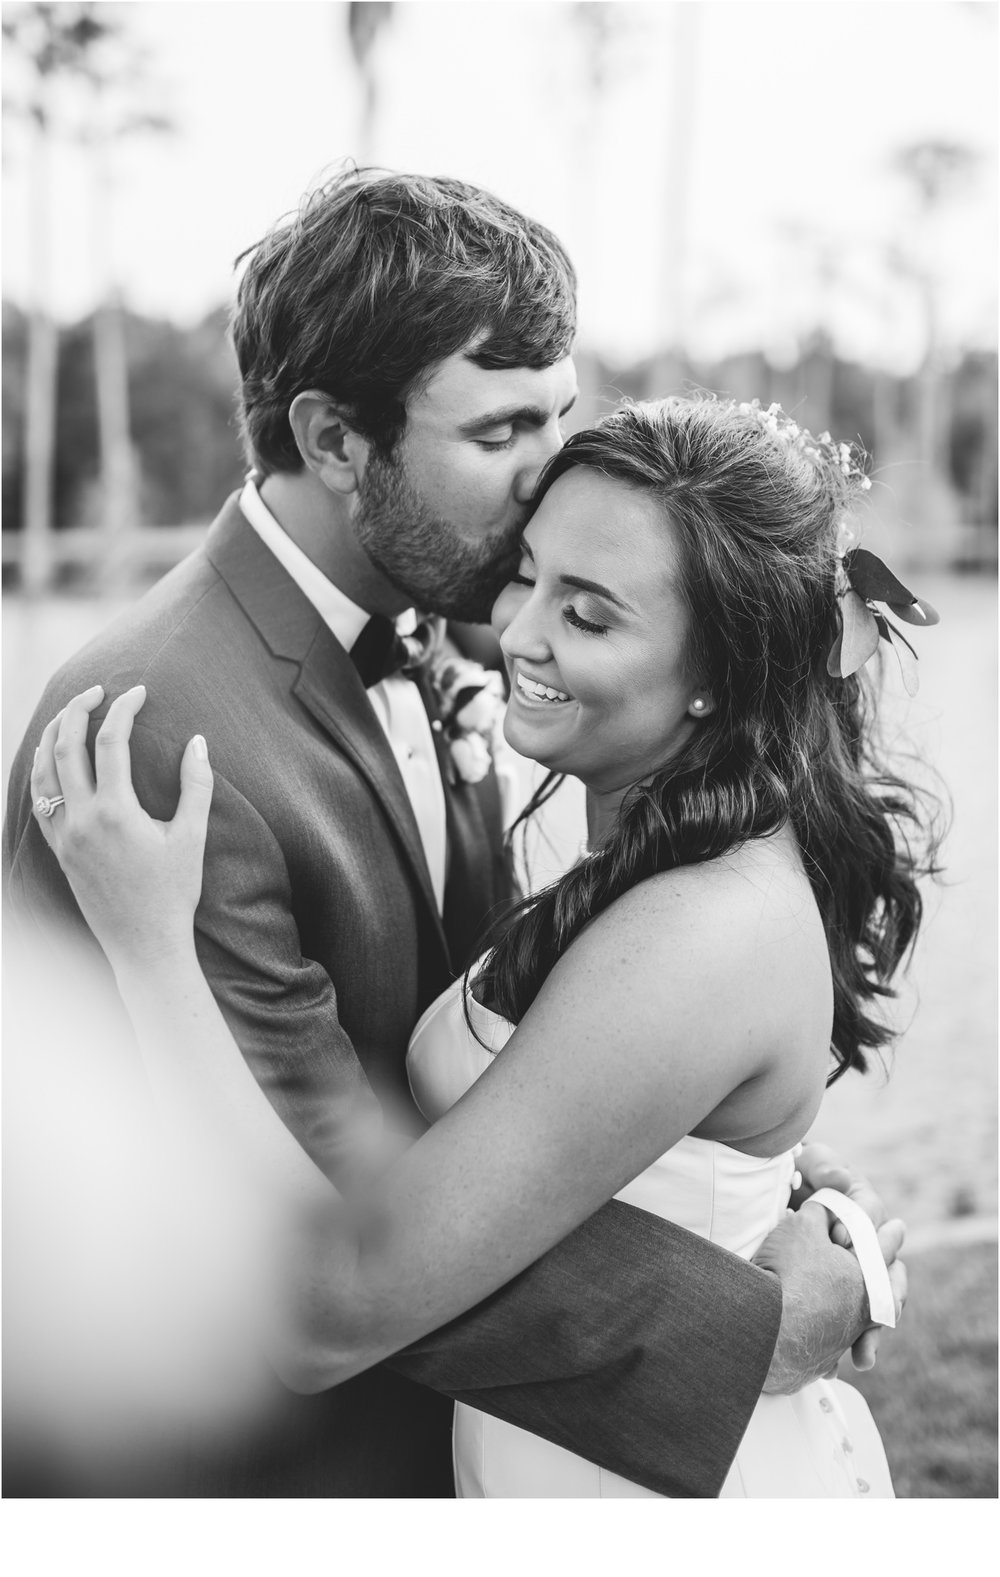 Rainey_Gregg_Photography_St._Simons_Island_Georgia_California_Wedding_Portrait_Photography_1008.jpg